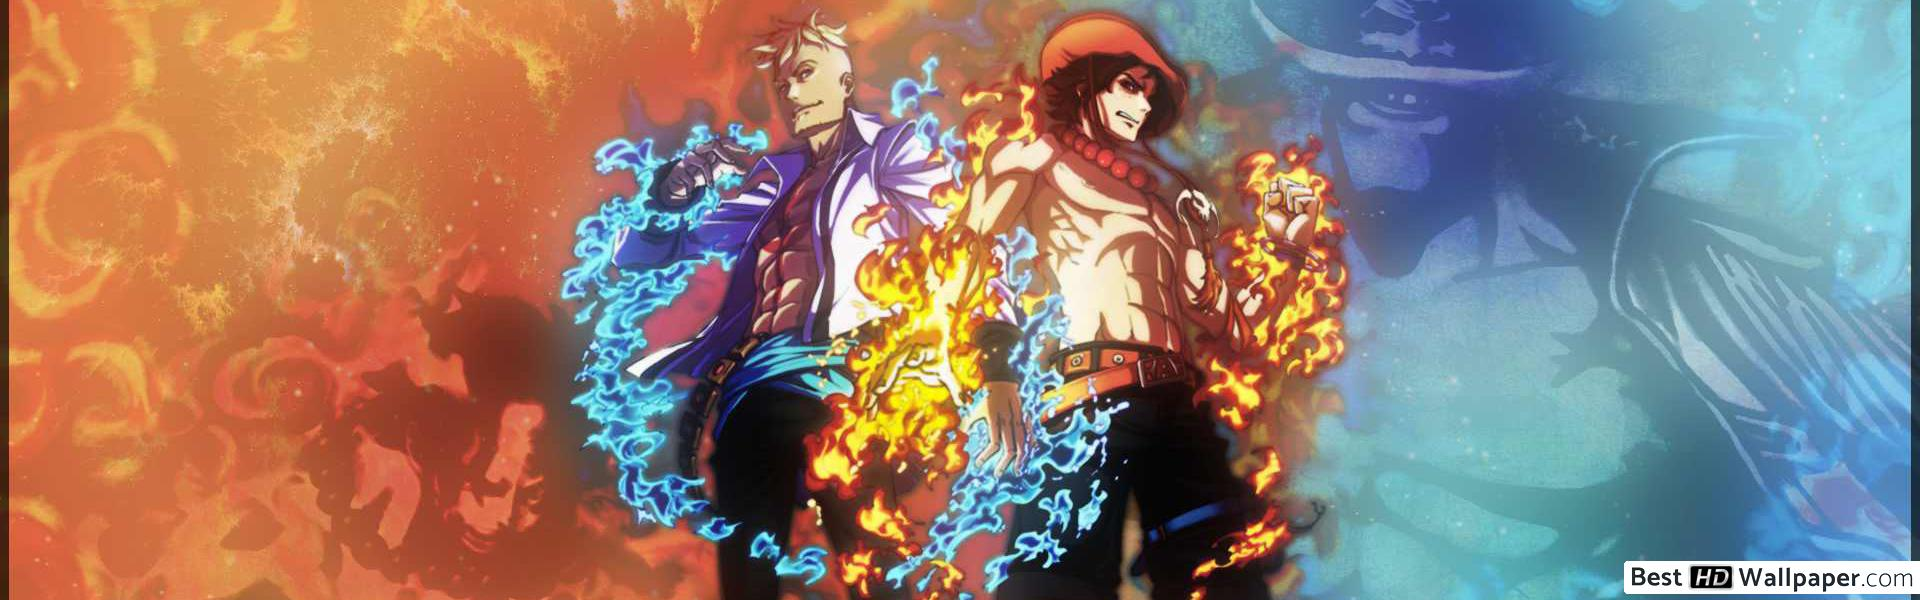 One Piece Best Wallpaper Posted By Ryan Johnson